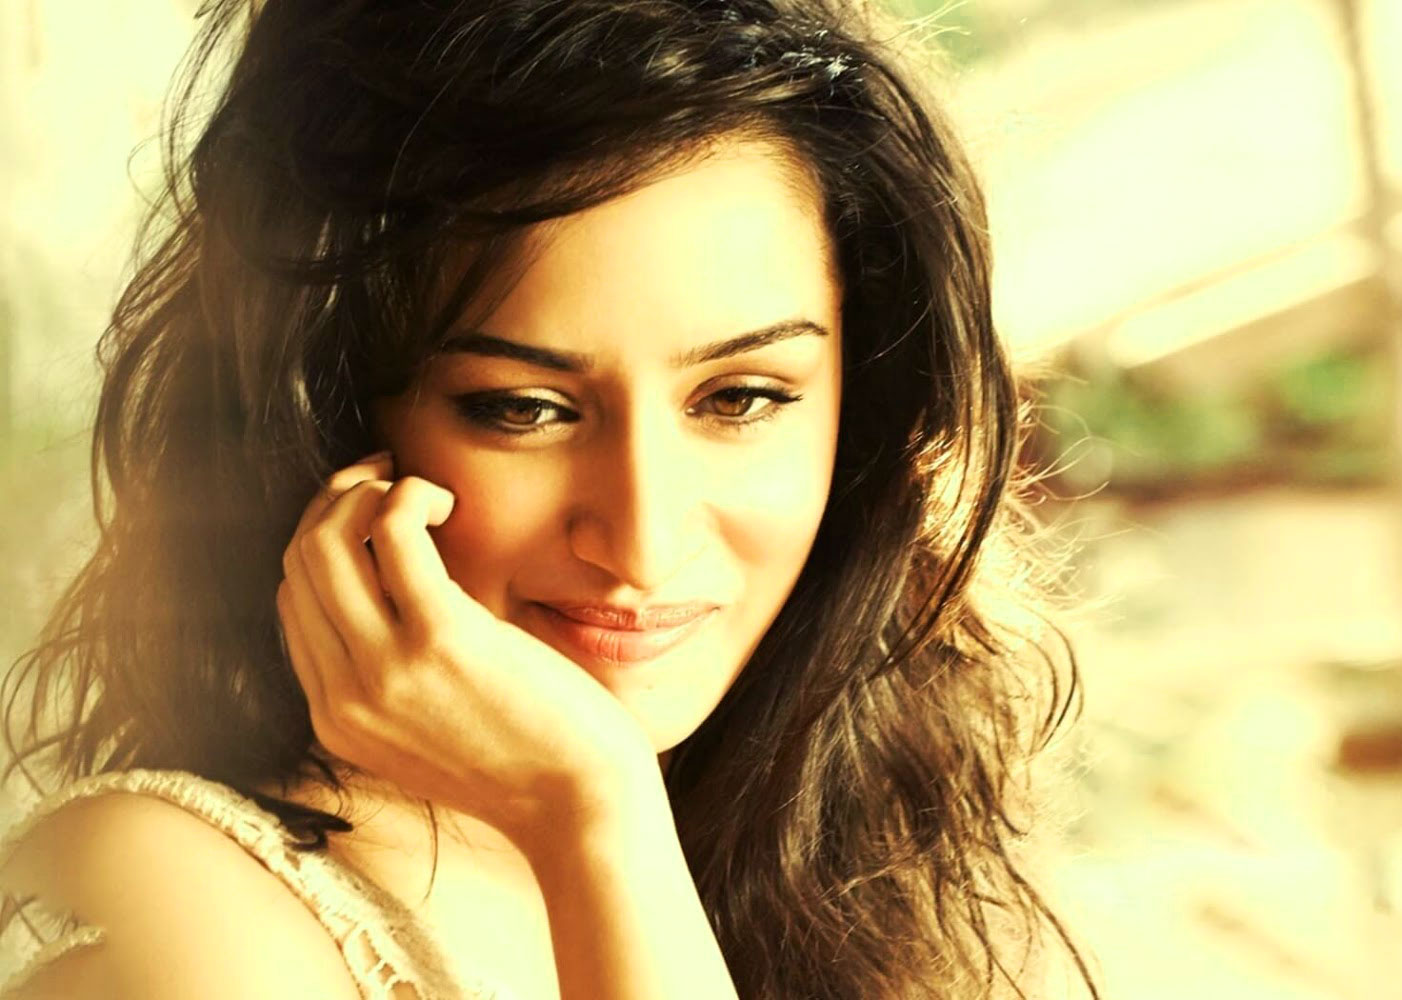 Shradha Kapoor Images Wallpaper Photo Pics Pictures Free Download